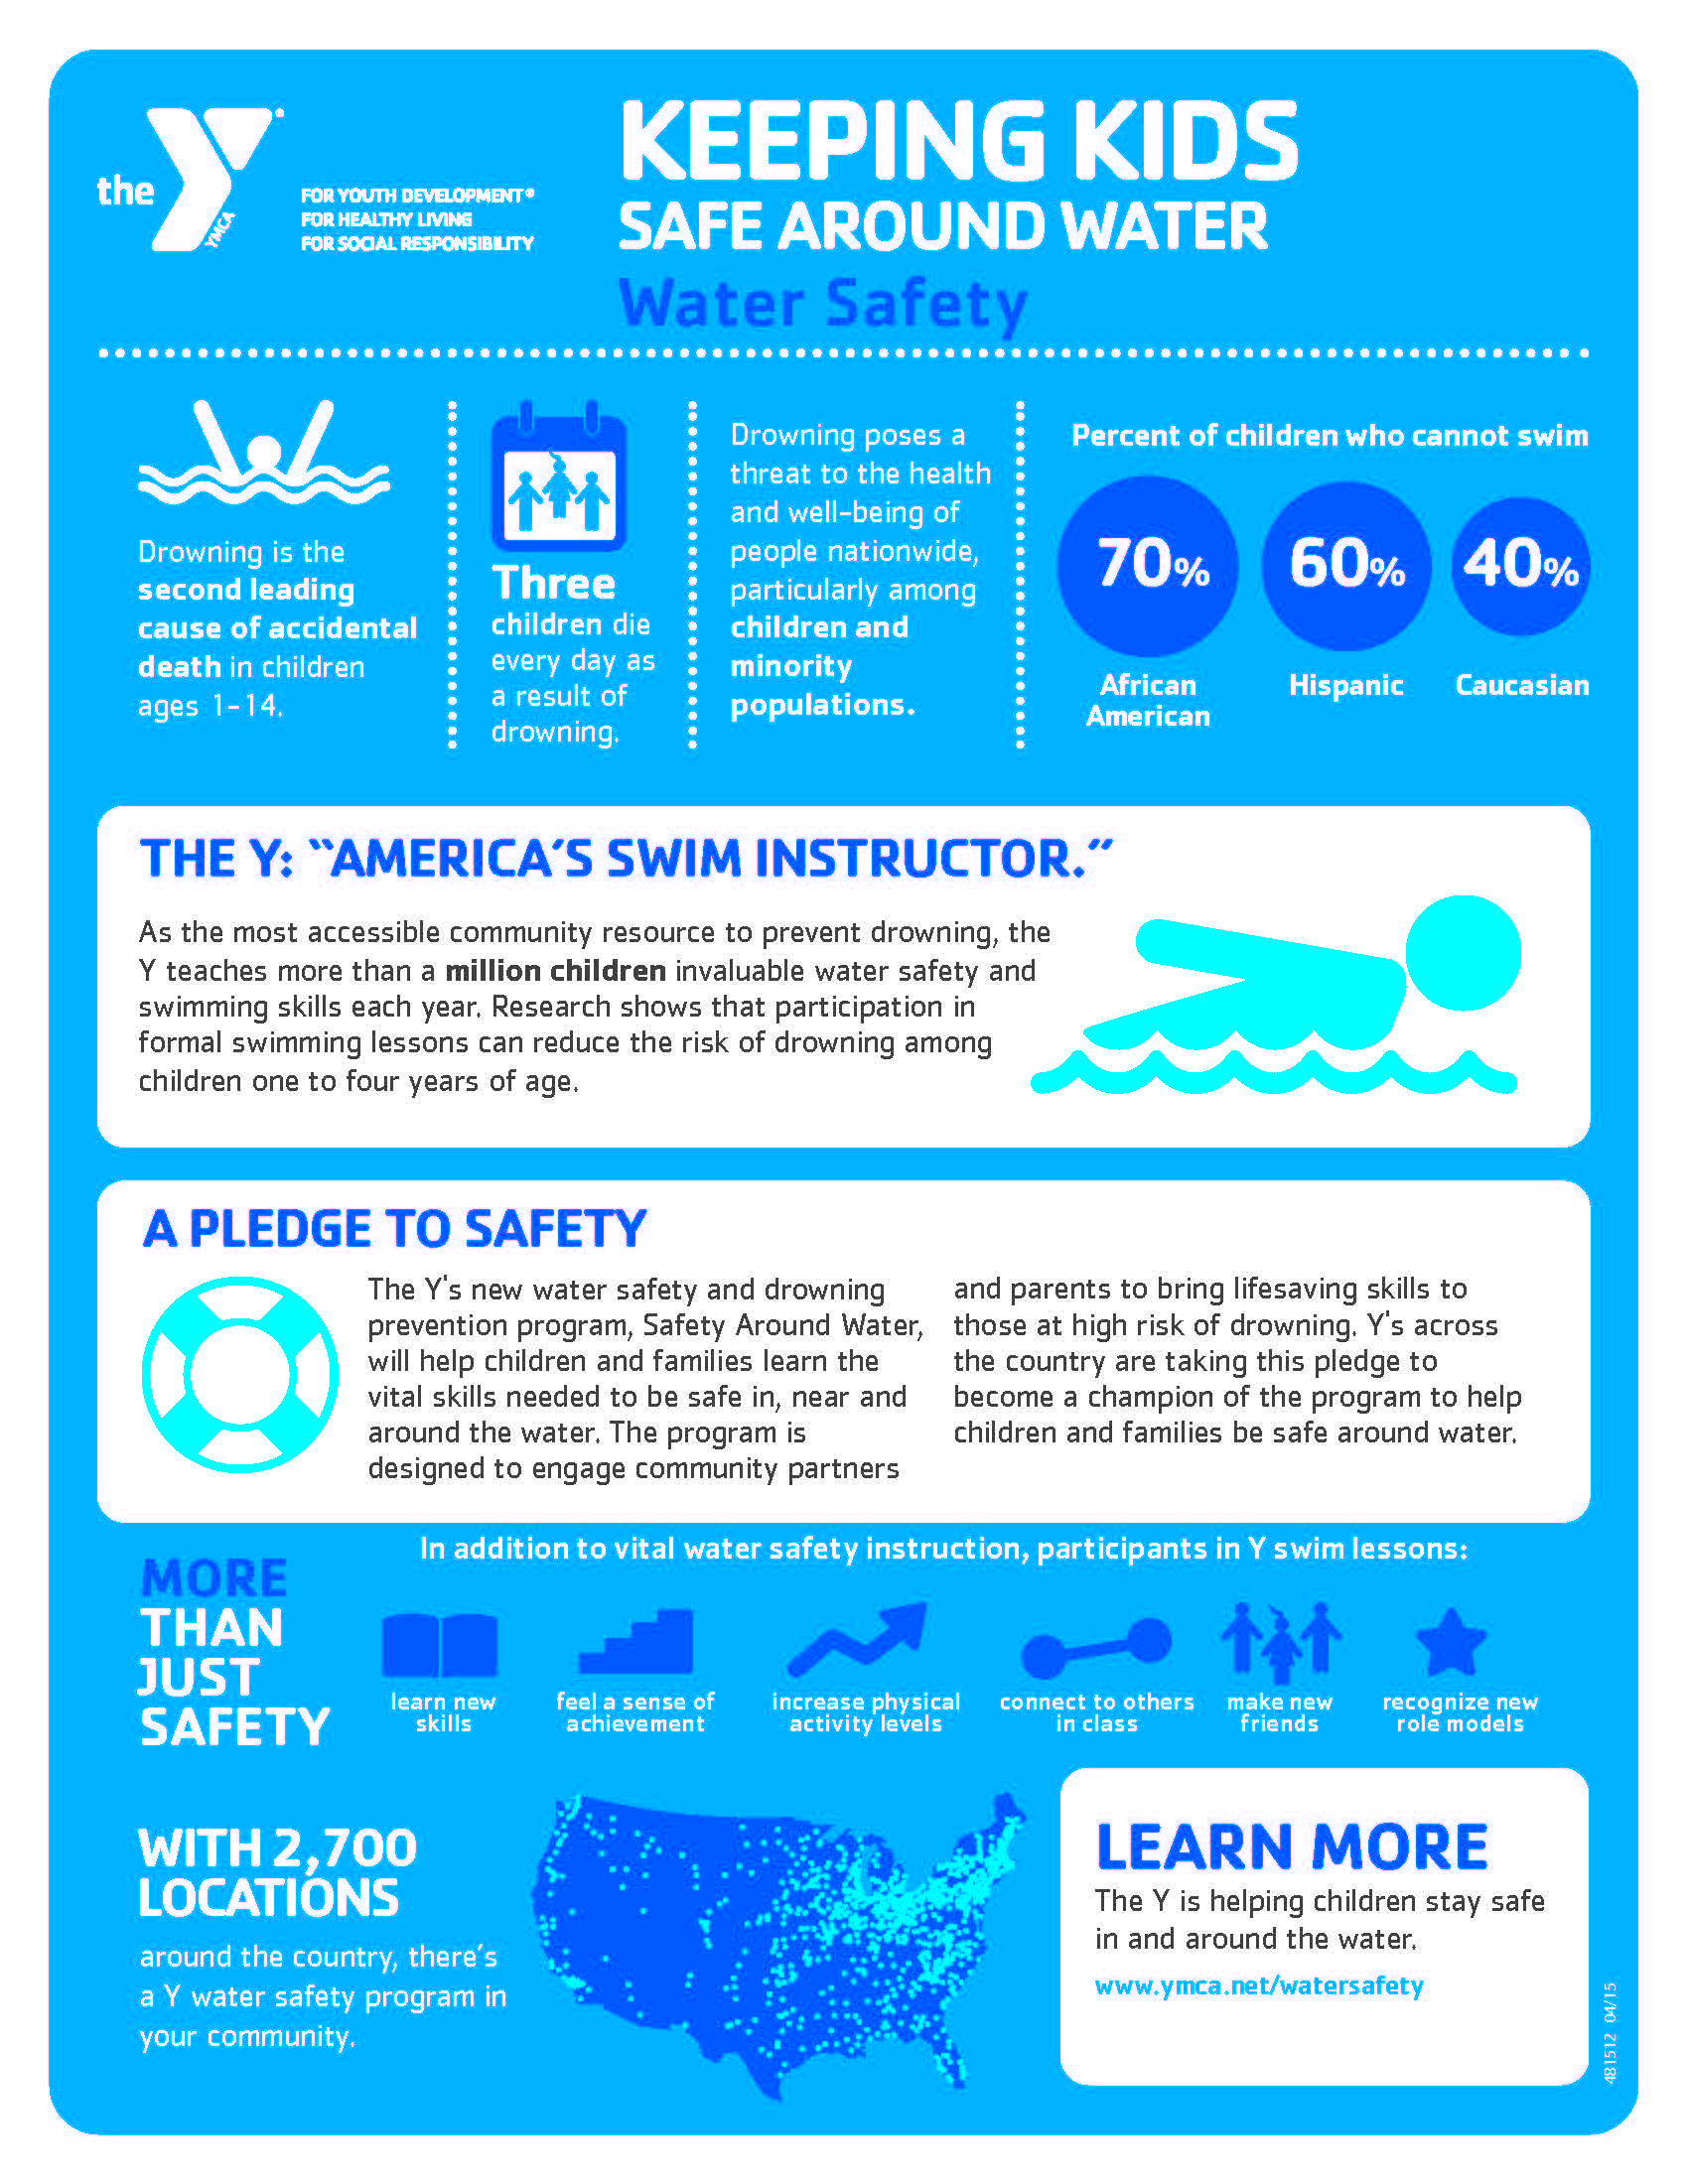 Keeping kids safe around the water is one of our most important keeping kids safe around the water is one of our most important goals the y is proud to be americas swim instructor and the most accessible community 1betcityfo Image collections